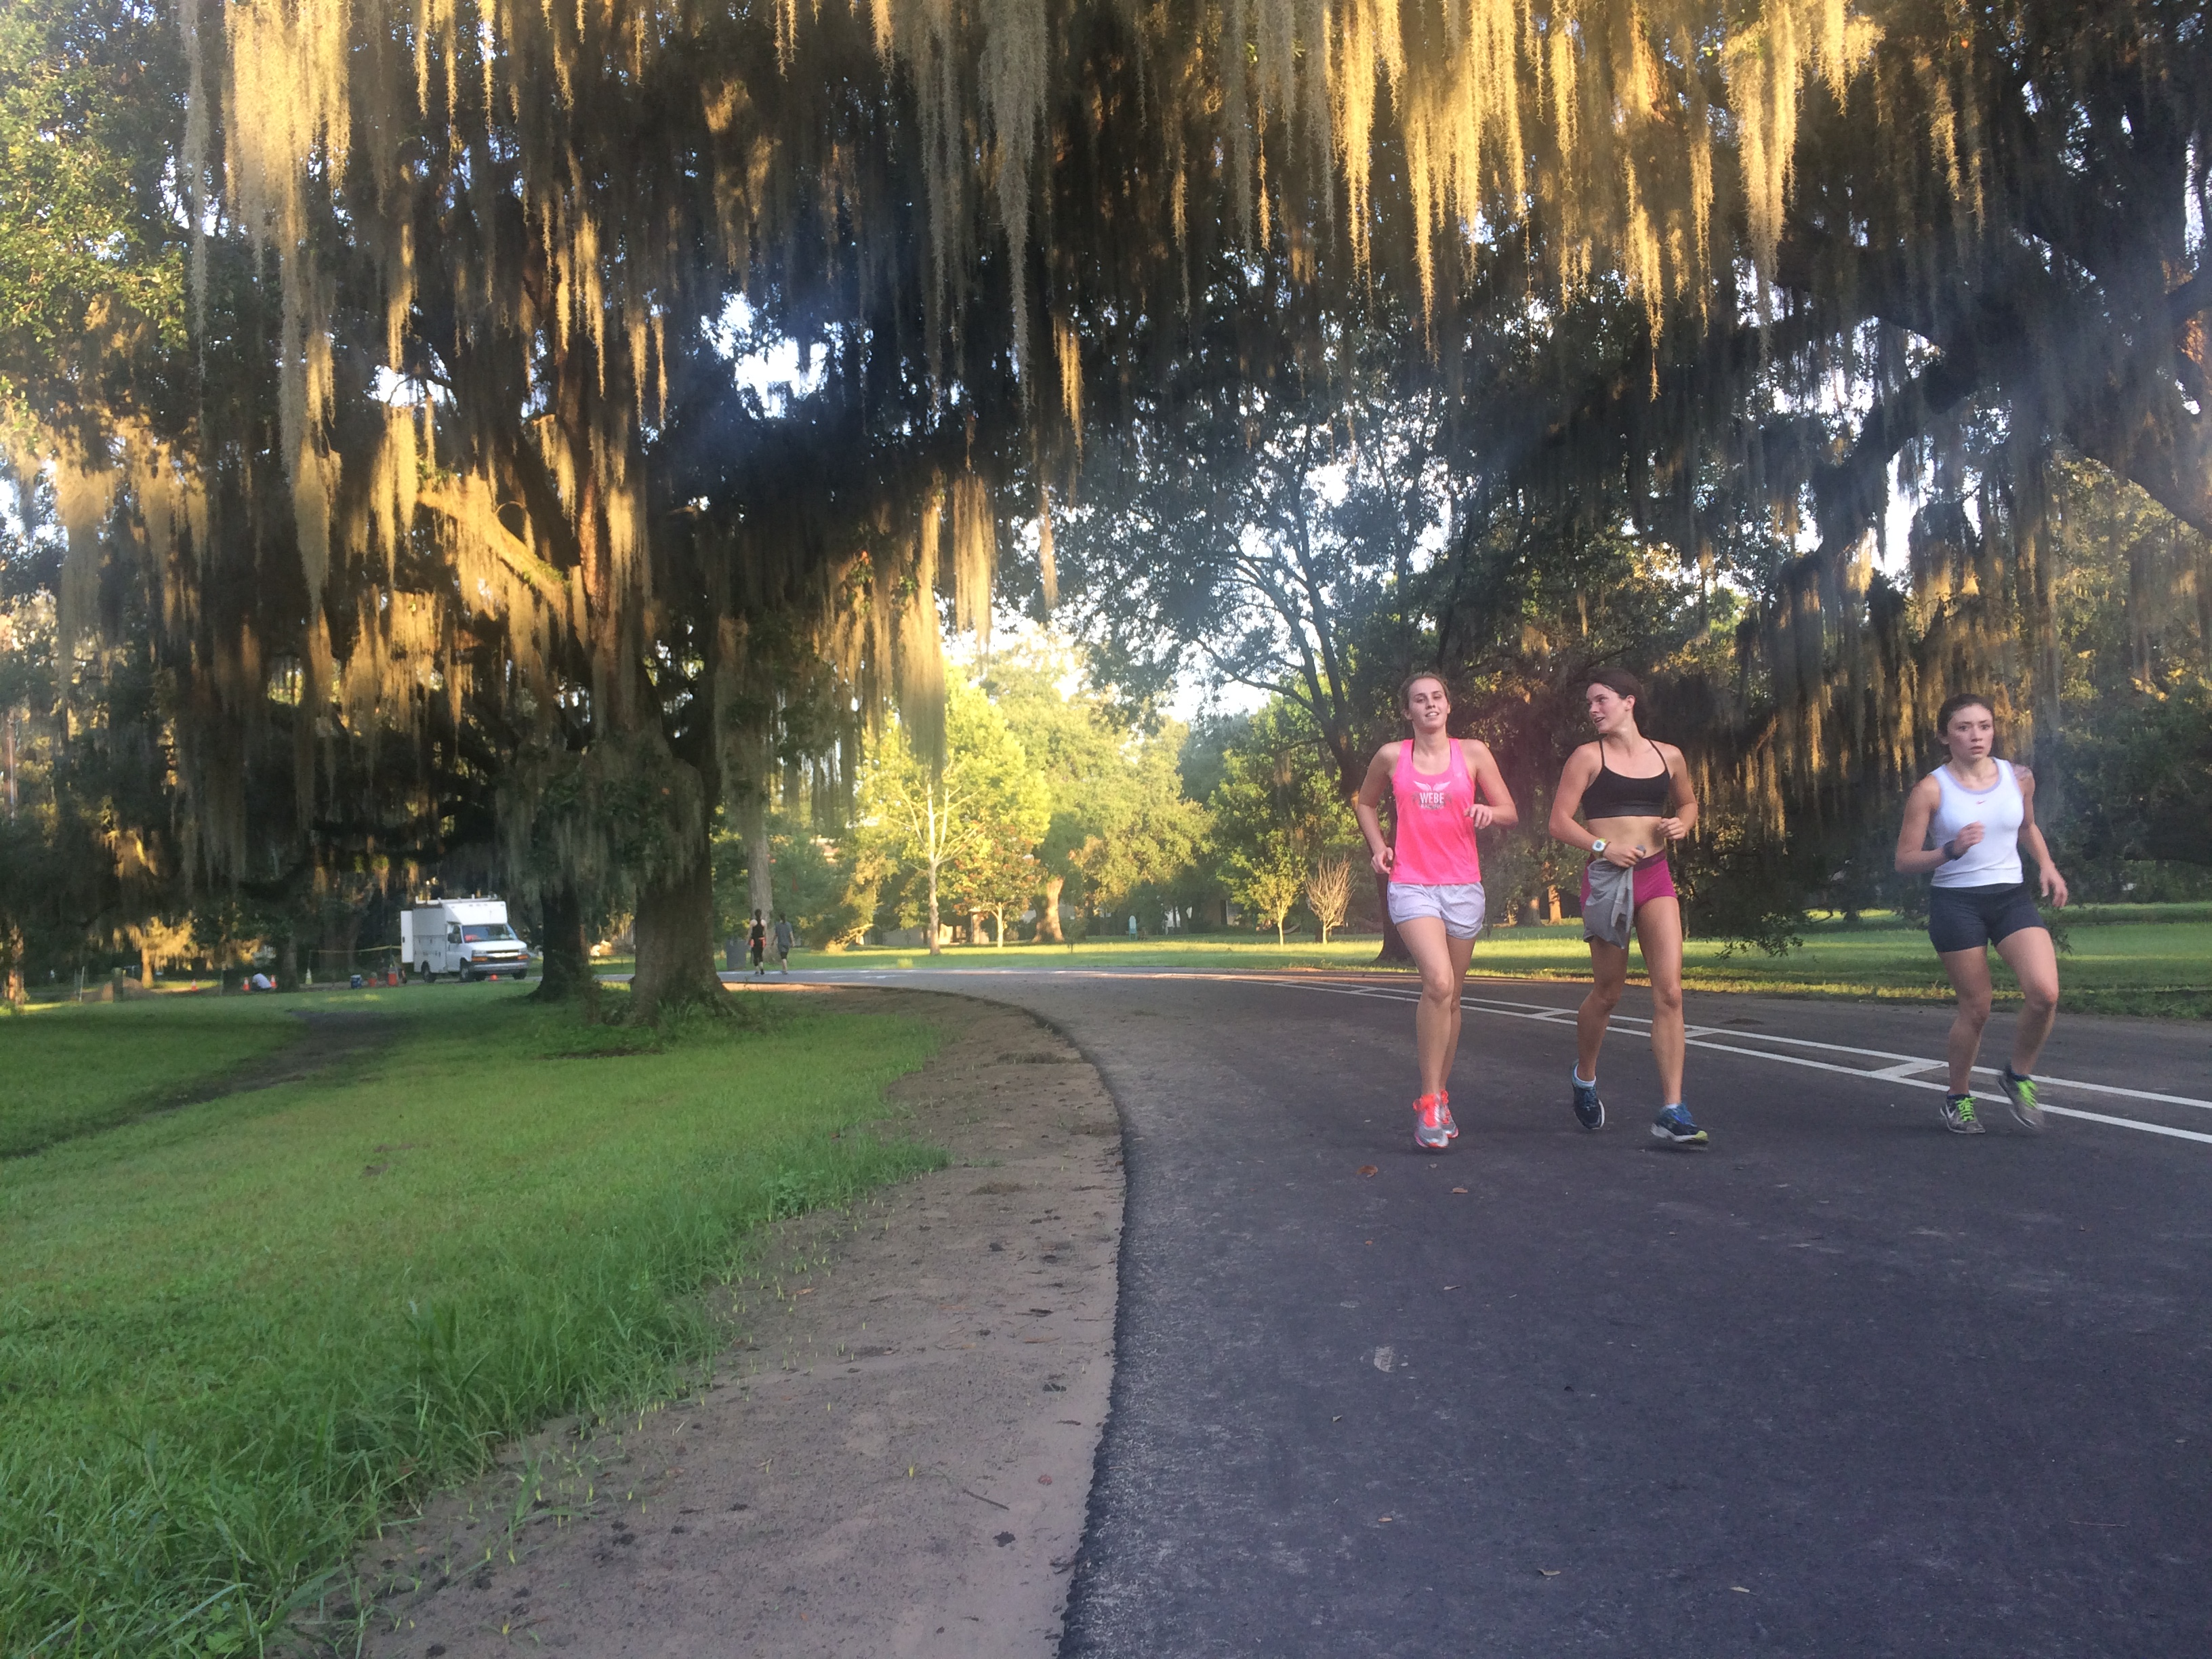 English sophomore Jordan Elissa, music freshman Tristin Sanders and biology sophomore Alma Guerra-Gonzalez run at cross country practice Aug. 24. The team has a new coach this year. Photo credit: Colleen Dulle